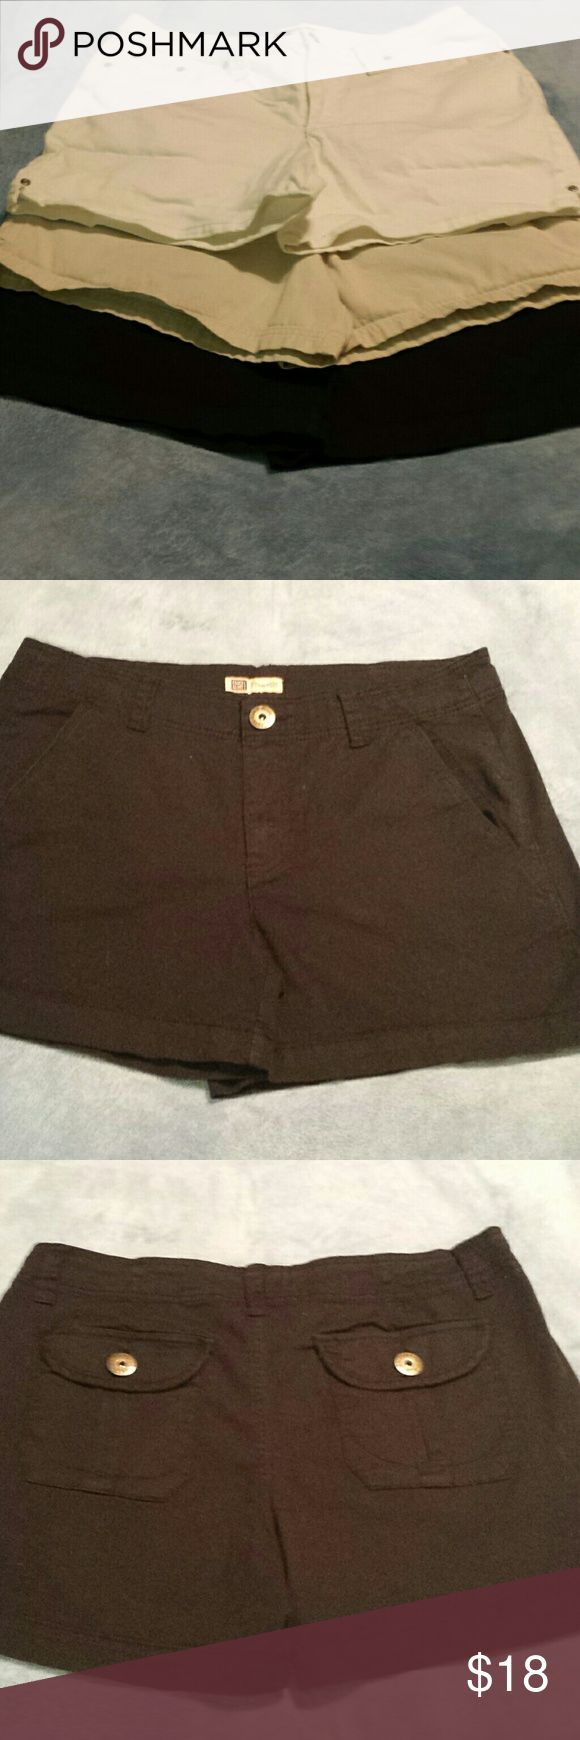 """3 Pairs Size 12 Shorts. Black, White, & Khaki. Bundle of 3 pairs of size 12 women's shorts. All in arein good used condition. No holes or stains. (1) Black """"Faded Glory Stretch"""" shorts. 97% Cotton/3% Spandex. 4"""" Inseam, 10"""" Rise. They aren't faded like they look in pics 2 & 3. They're black like in pics 1 & 8. (2) Light Khaki """"Carolina Blues"""" shorts. 100% Cotton. 3.5"""" Inseam, 13.5"""" Rise. They're """"painter's"""" type as shown in pic 5. (3) White denim """"Faded Glory Stretch"""". 98% Cotton/2% Spandex…"""